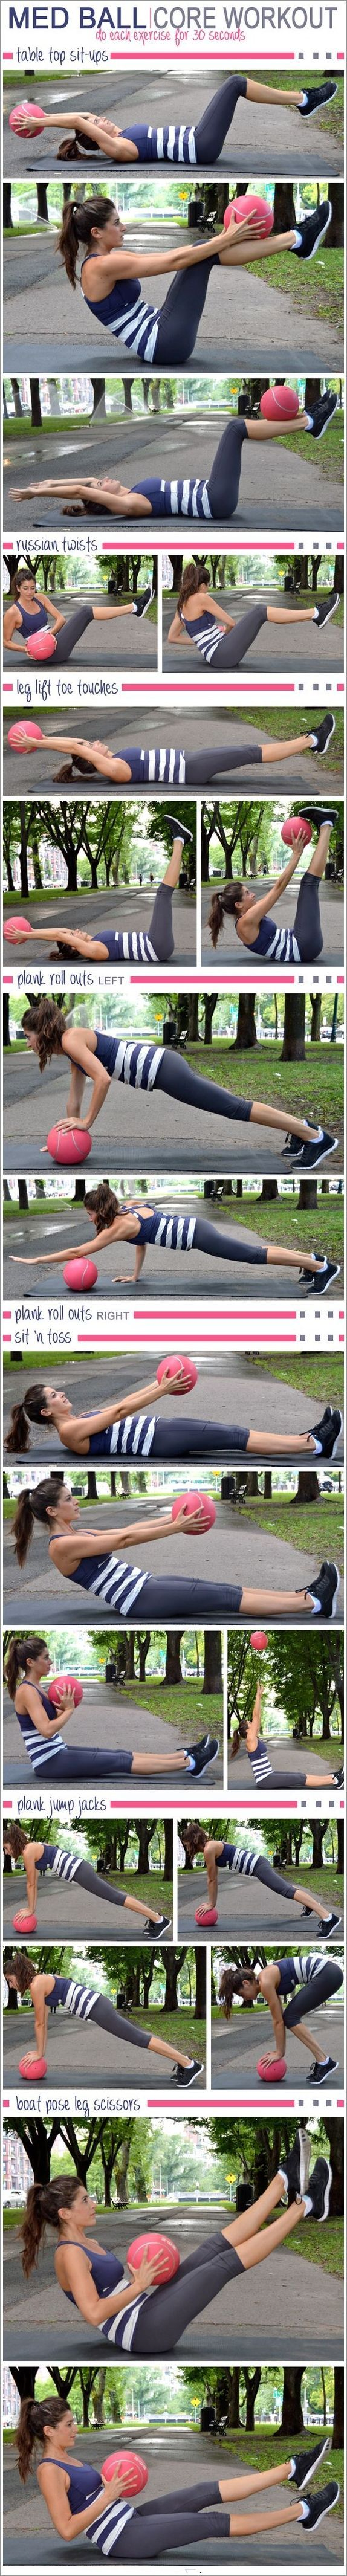 Get ready to work your core with these dynamic moves using the stability ball. This core stability ball circuit was designed as a workout for beginners.   #weightloss #loseweight #howtoloseweight #coreworkout #customworkout #morningworkout #fitness #health #diet